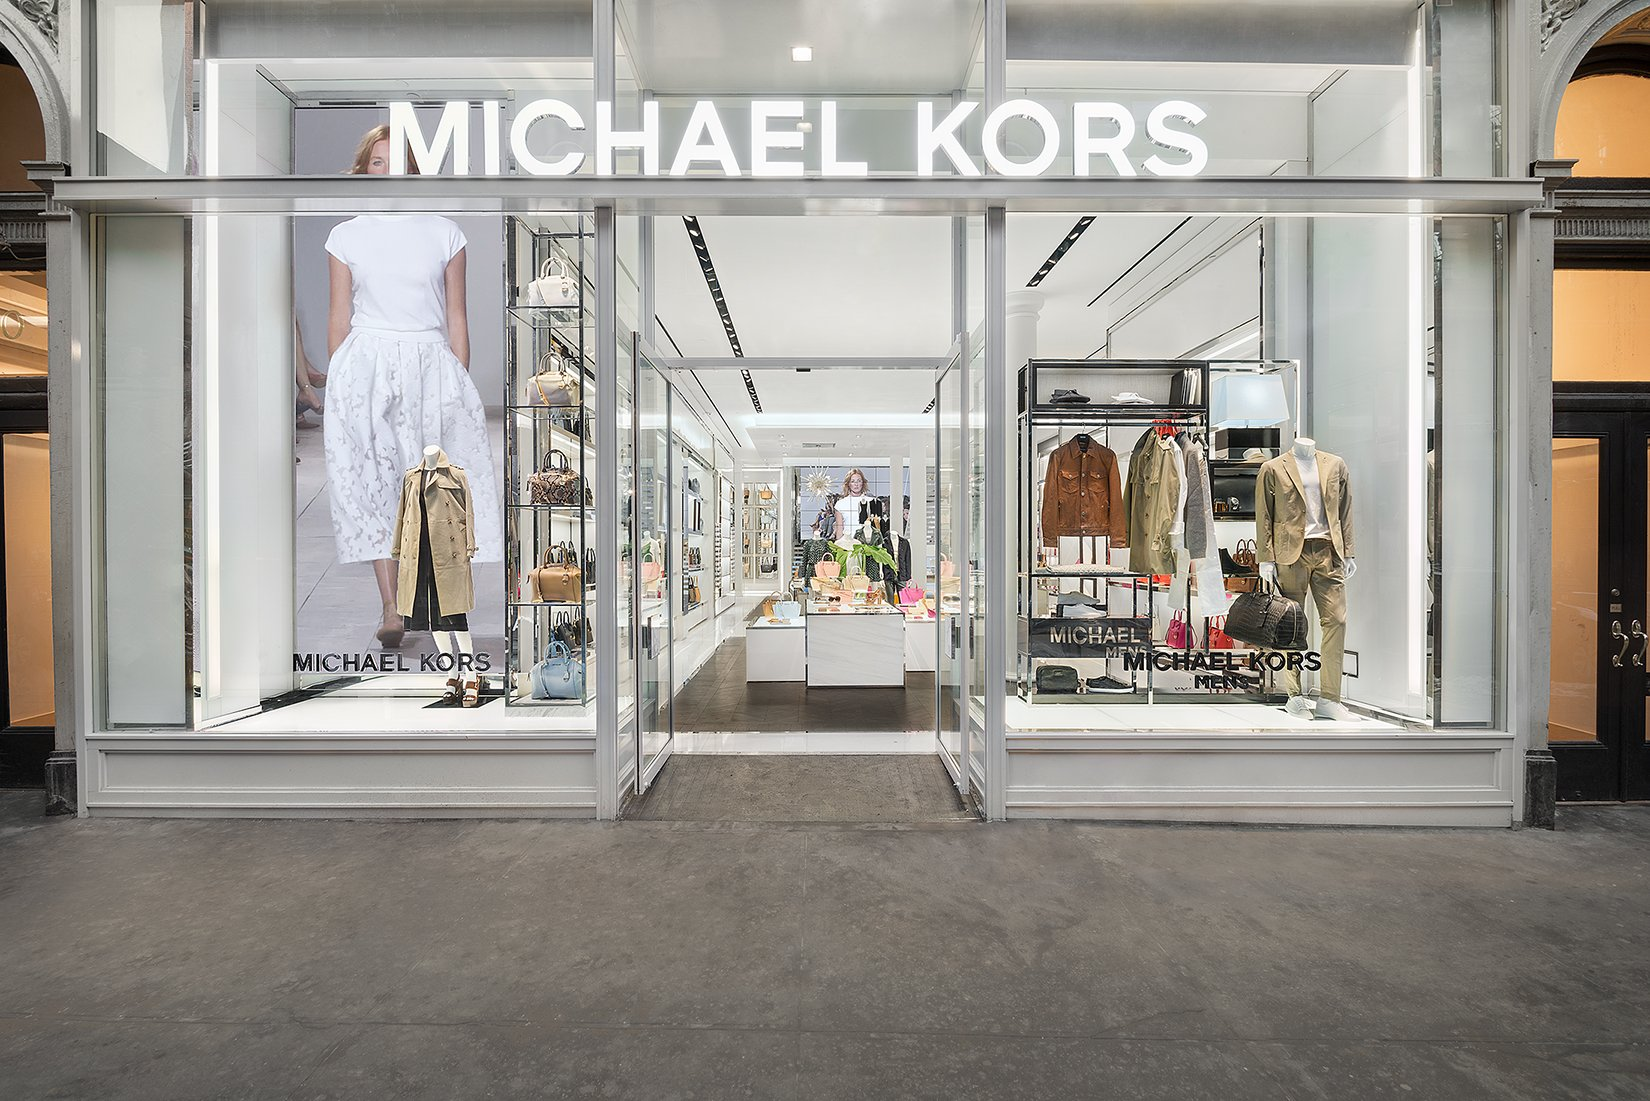 abb1b4461007 All Michael Kors Locations Worldwide | Designer Handbags, Clothing ...